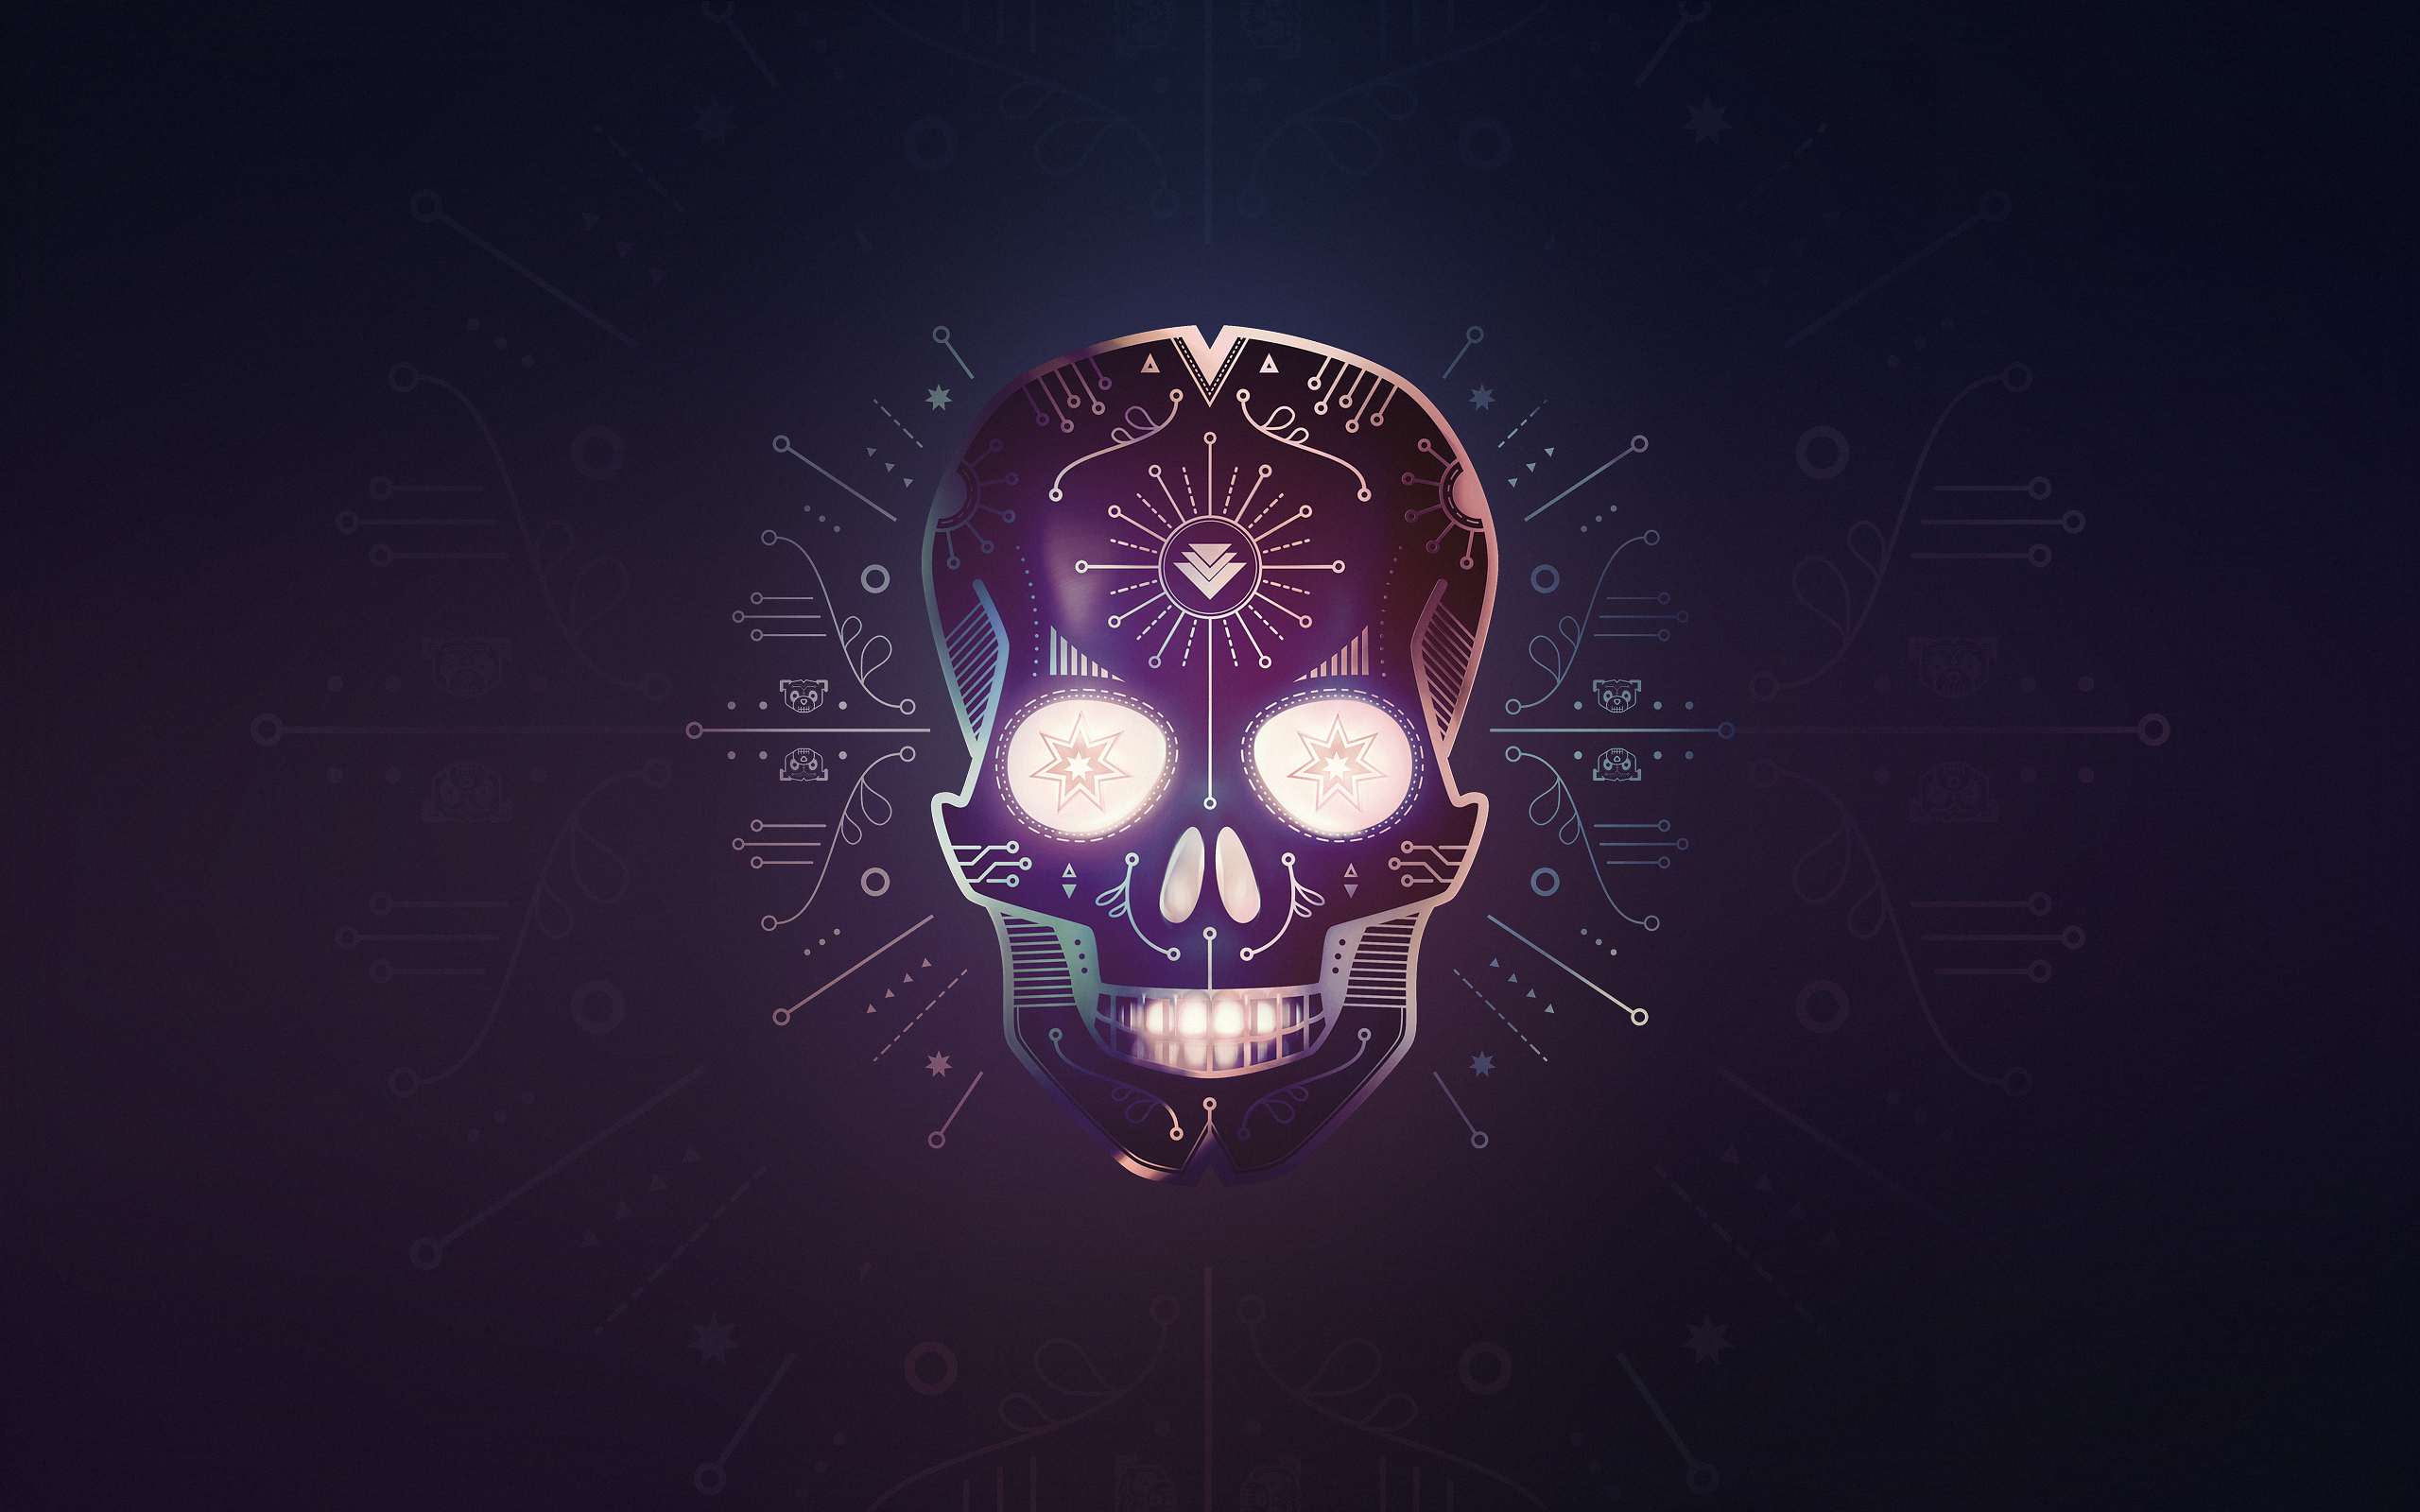 Hardwell & KURA - Calavera Full HD Wallpaper and ...